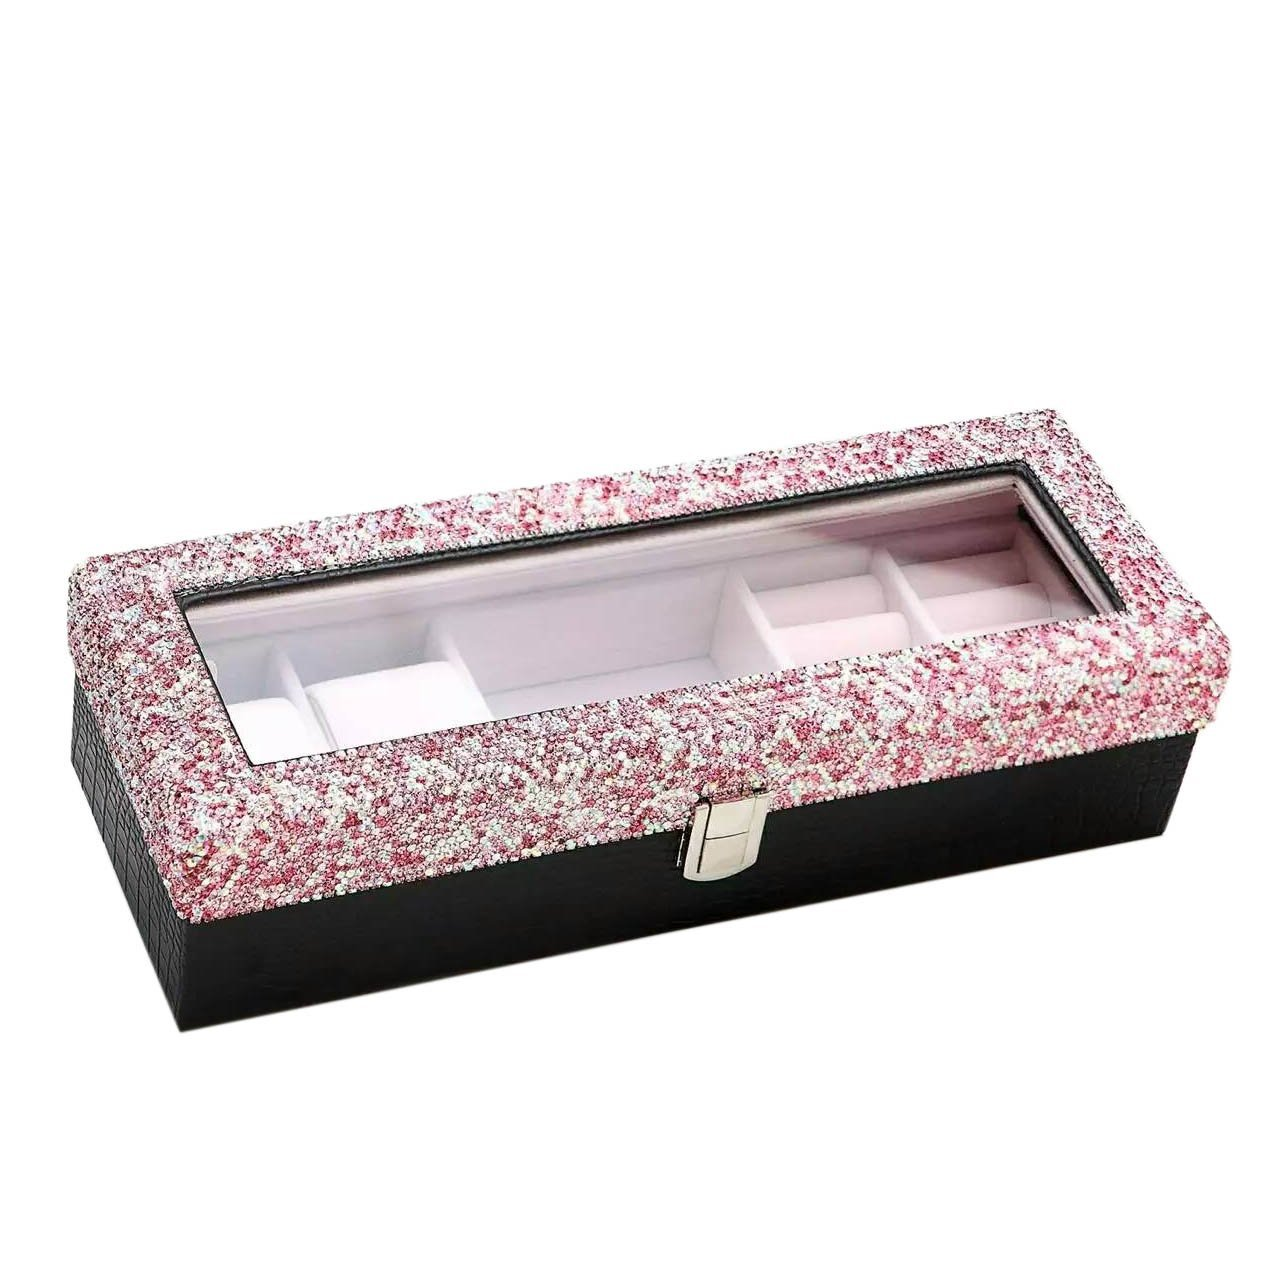 Cheap Bling Eez Blingeez Jewelry Organizer find Bling Eez Blingeez